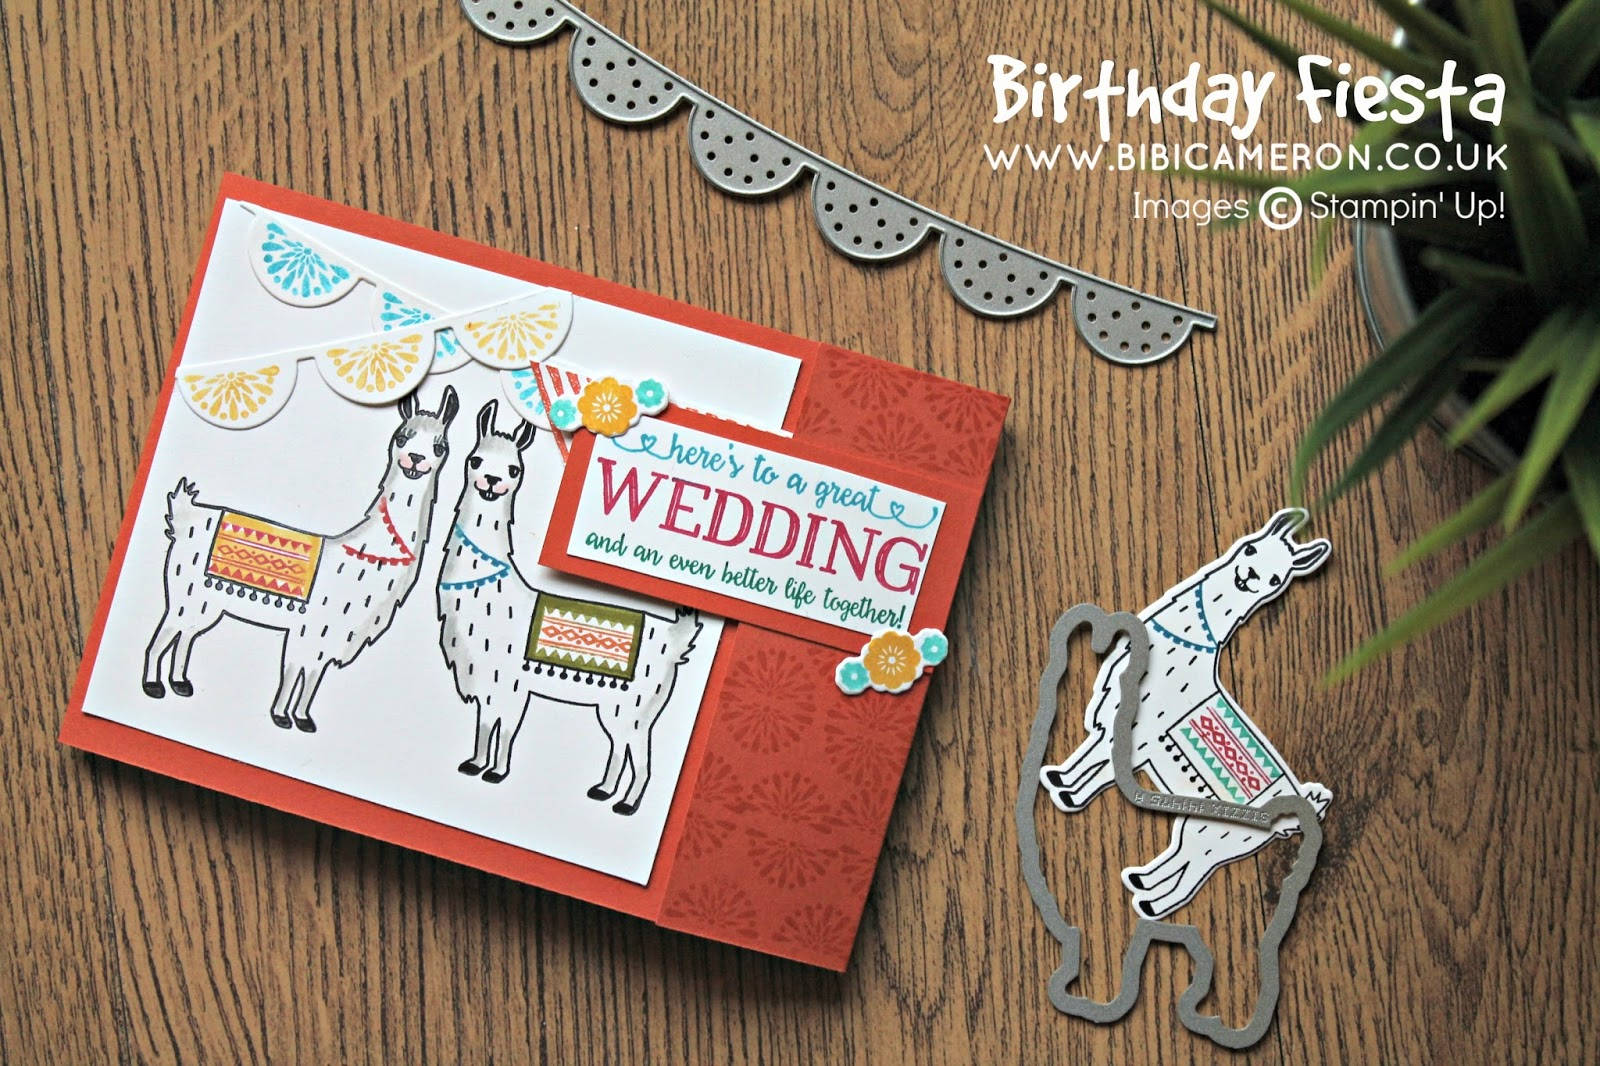 LLAMA WEDDING CARD + BIRTHDAY FIESTA BY STAMPIN' UP! GDP043 – Theme